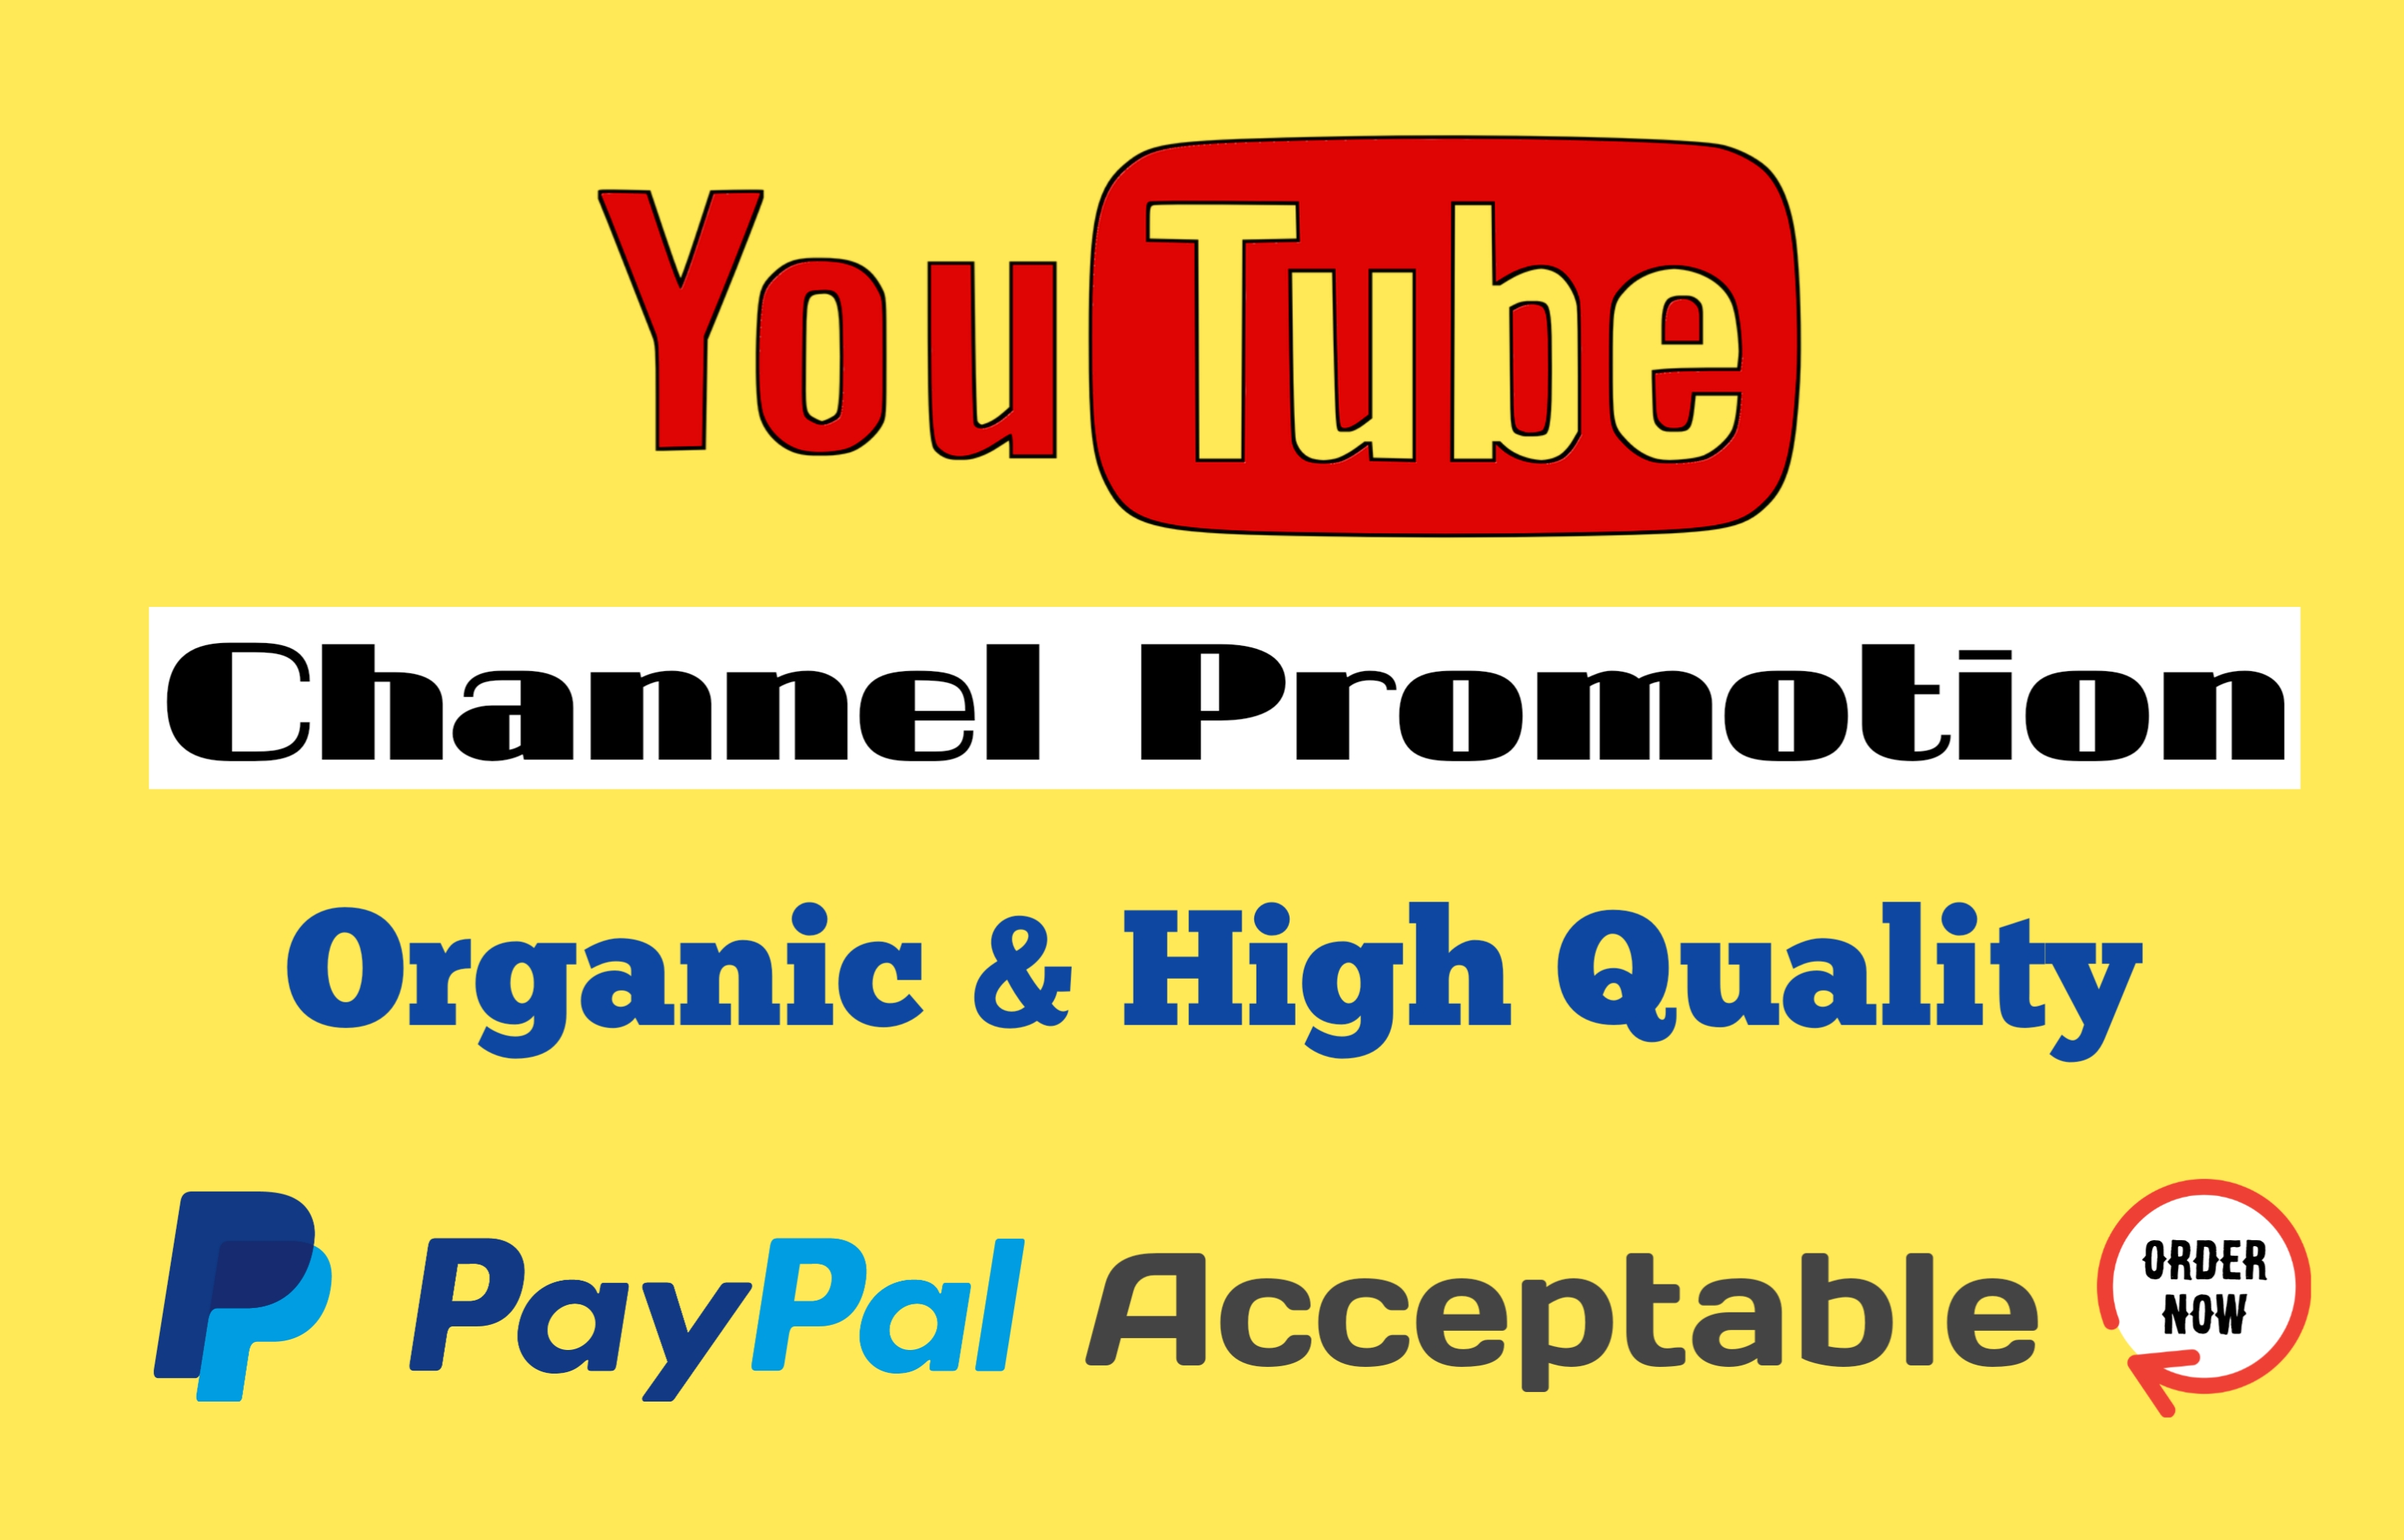 I Will Add Lasting YouTube Promotion Video Via